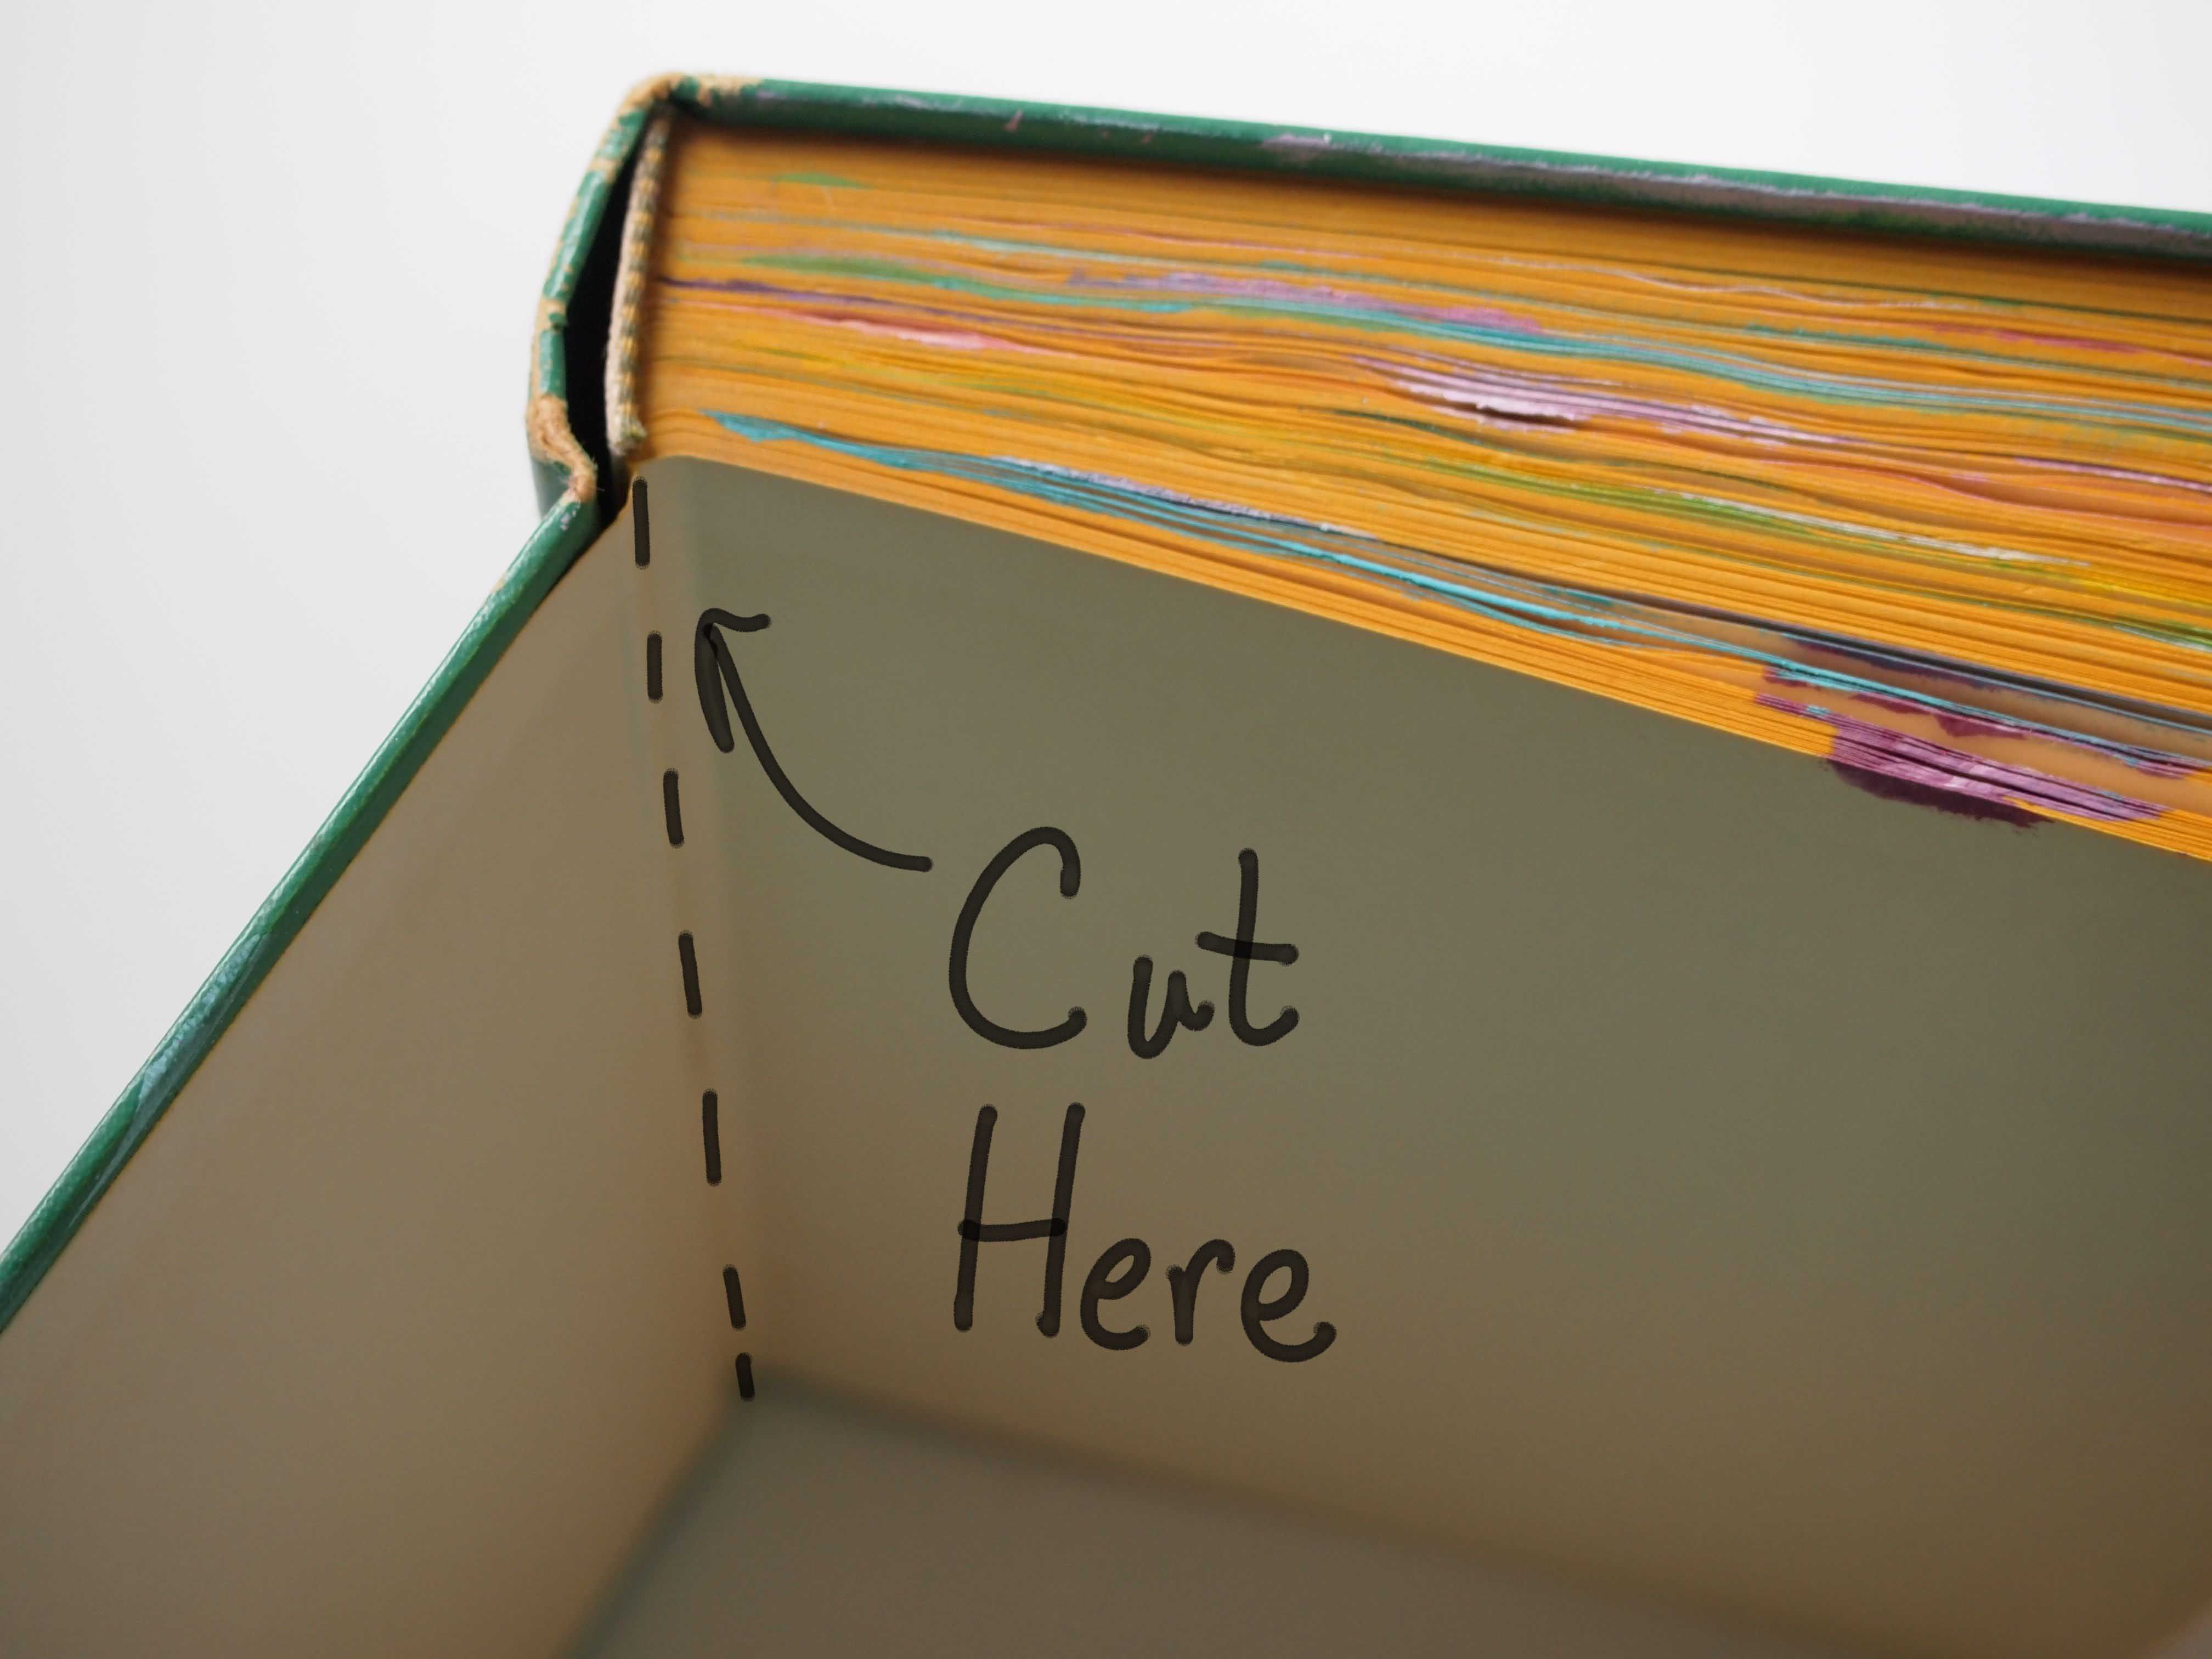 How to make scrapbook journal - 25 Best Ideas About How To Make Scrapbook On Pinterest Smash Book Scrapbooking Ideas And Scrapbook